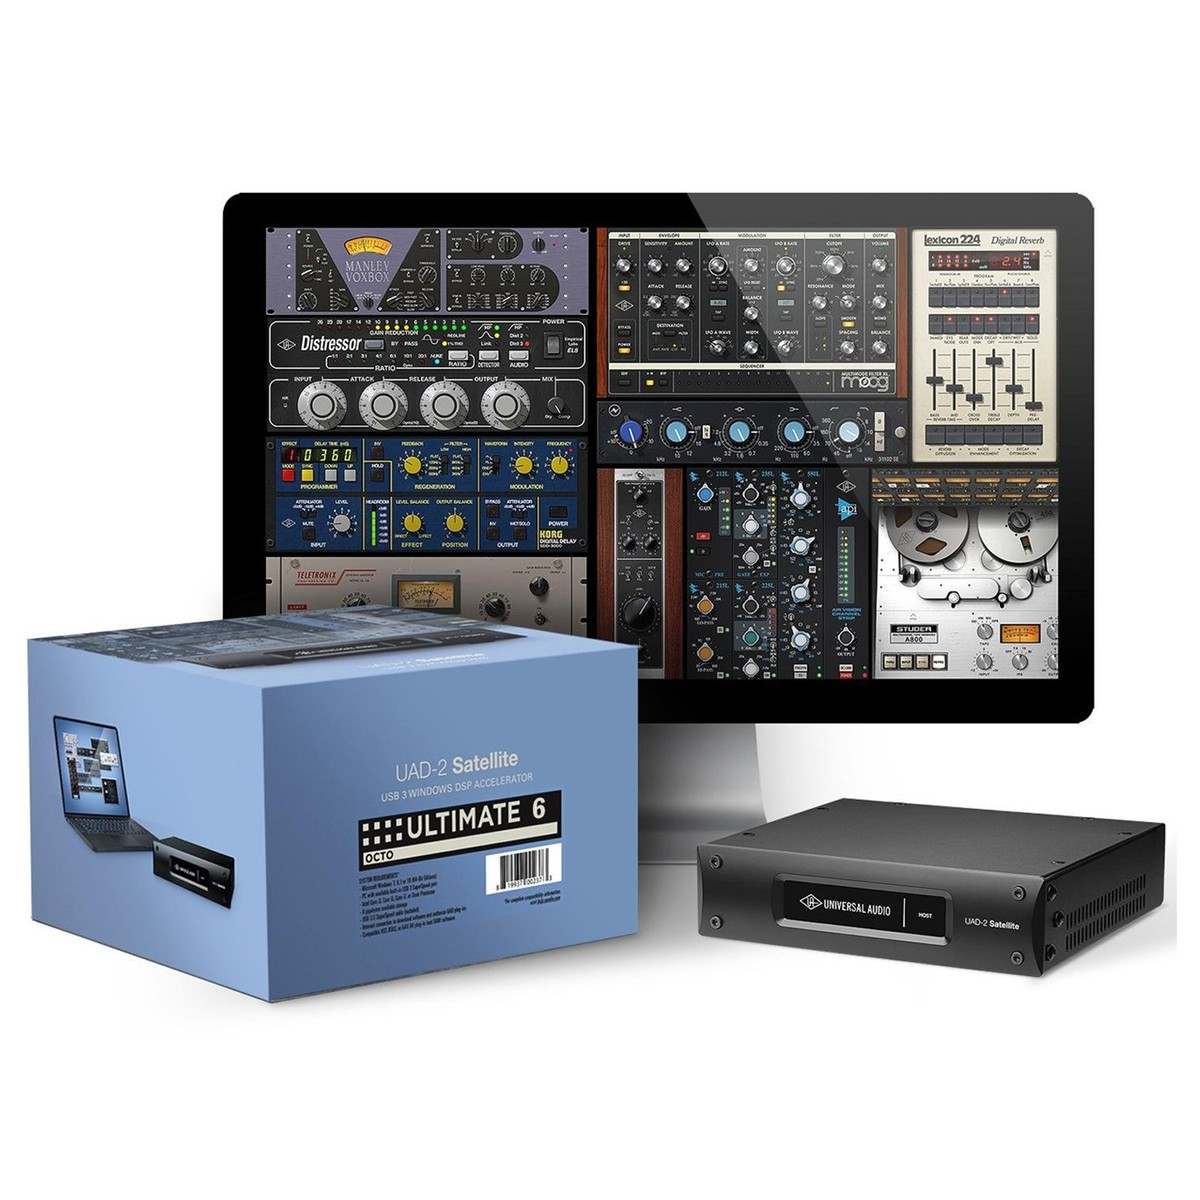 Universal audio uad 2 satellite usb octo ultimate 6 na gear4music universal audio uad 2 satellite usb octo ultimate 6 main loading zoom stopboris Image collections